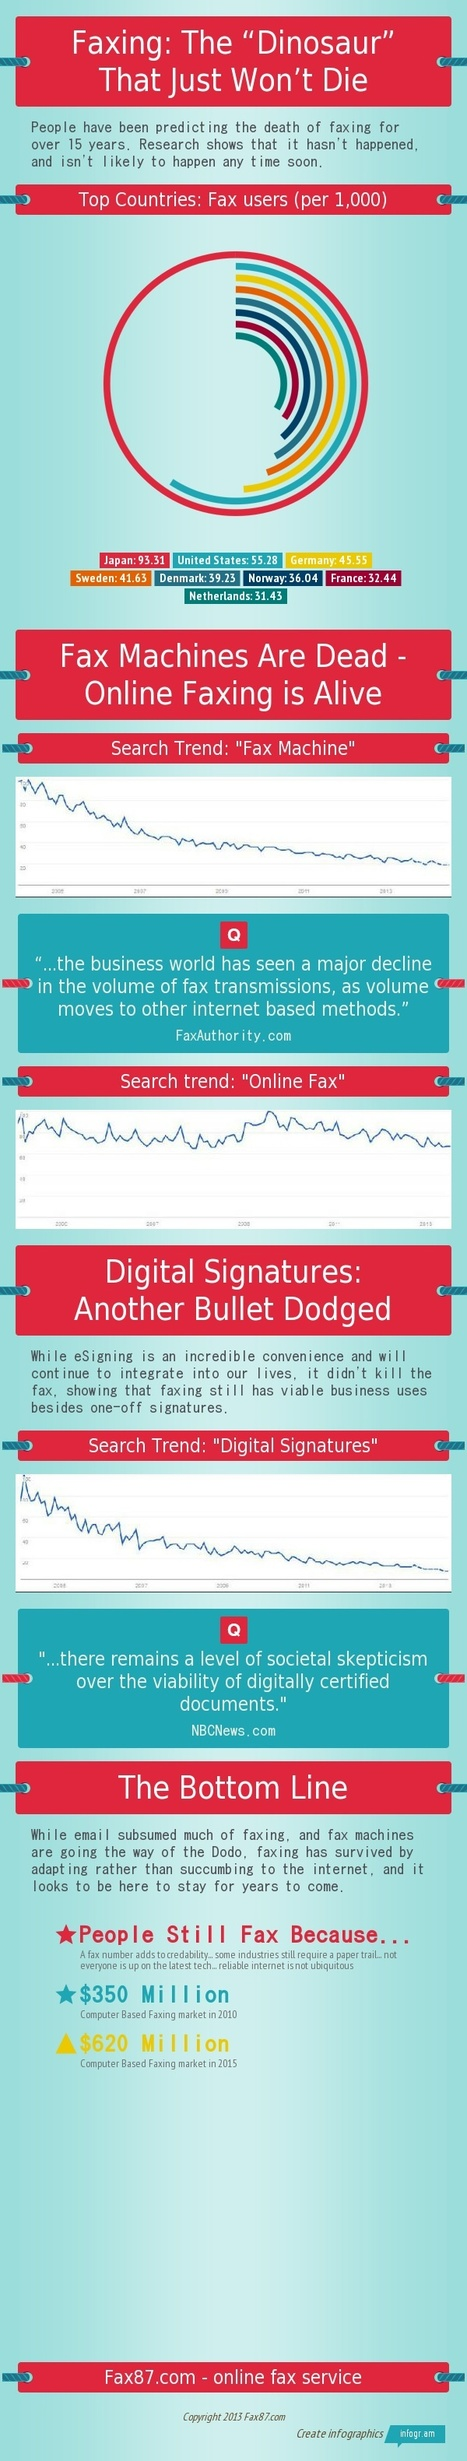 "Faxing: The ""Dinosaur"" That Just Won't Die [infographic] 